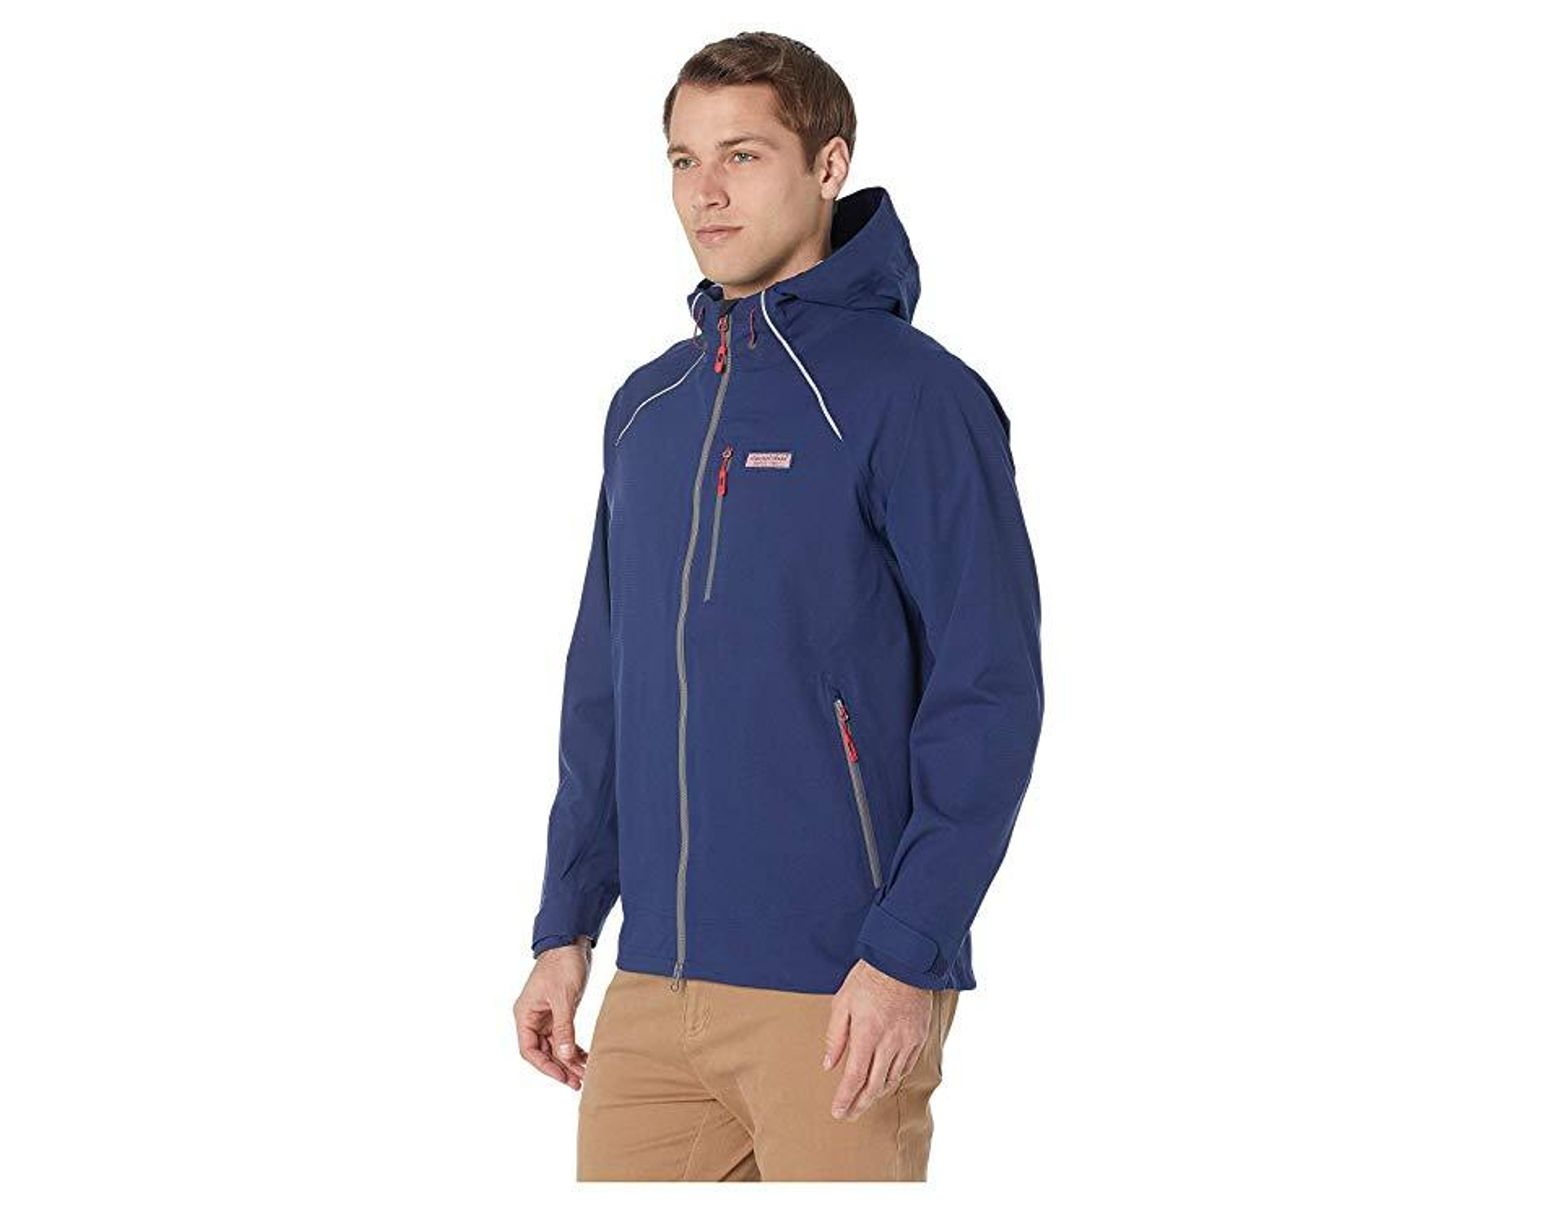 6d5c64657cdc7 Vineyard Vines The New Nor'easter Jacket (deep Bay) Coat in Blue for Men -  Save 38% - Lyst